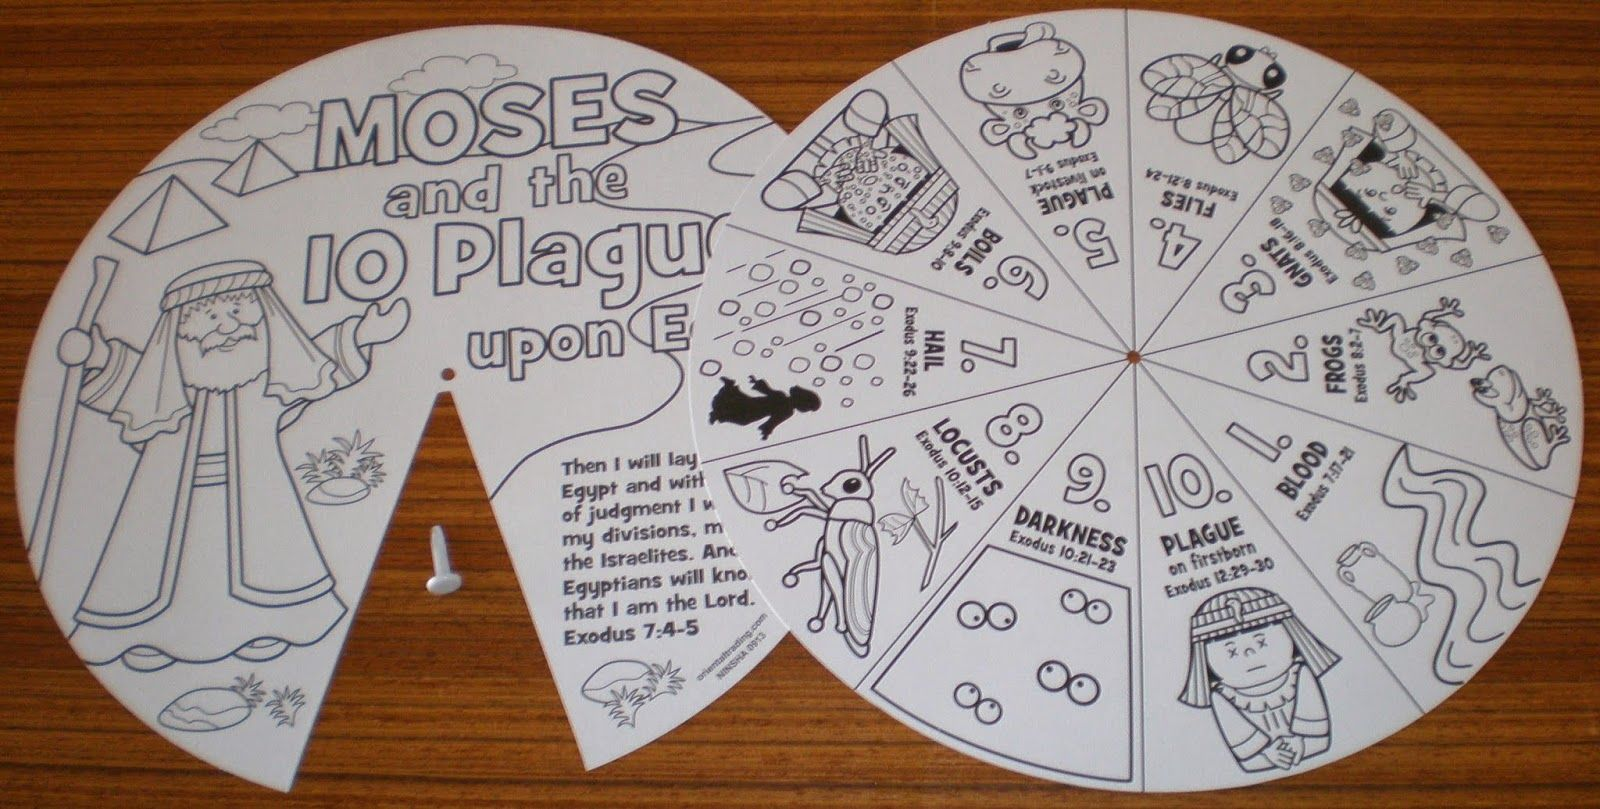 Petersham Bible Book Amp Tract Depot Colour Your Own 10 Plagues Wheel